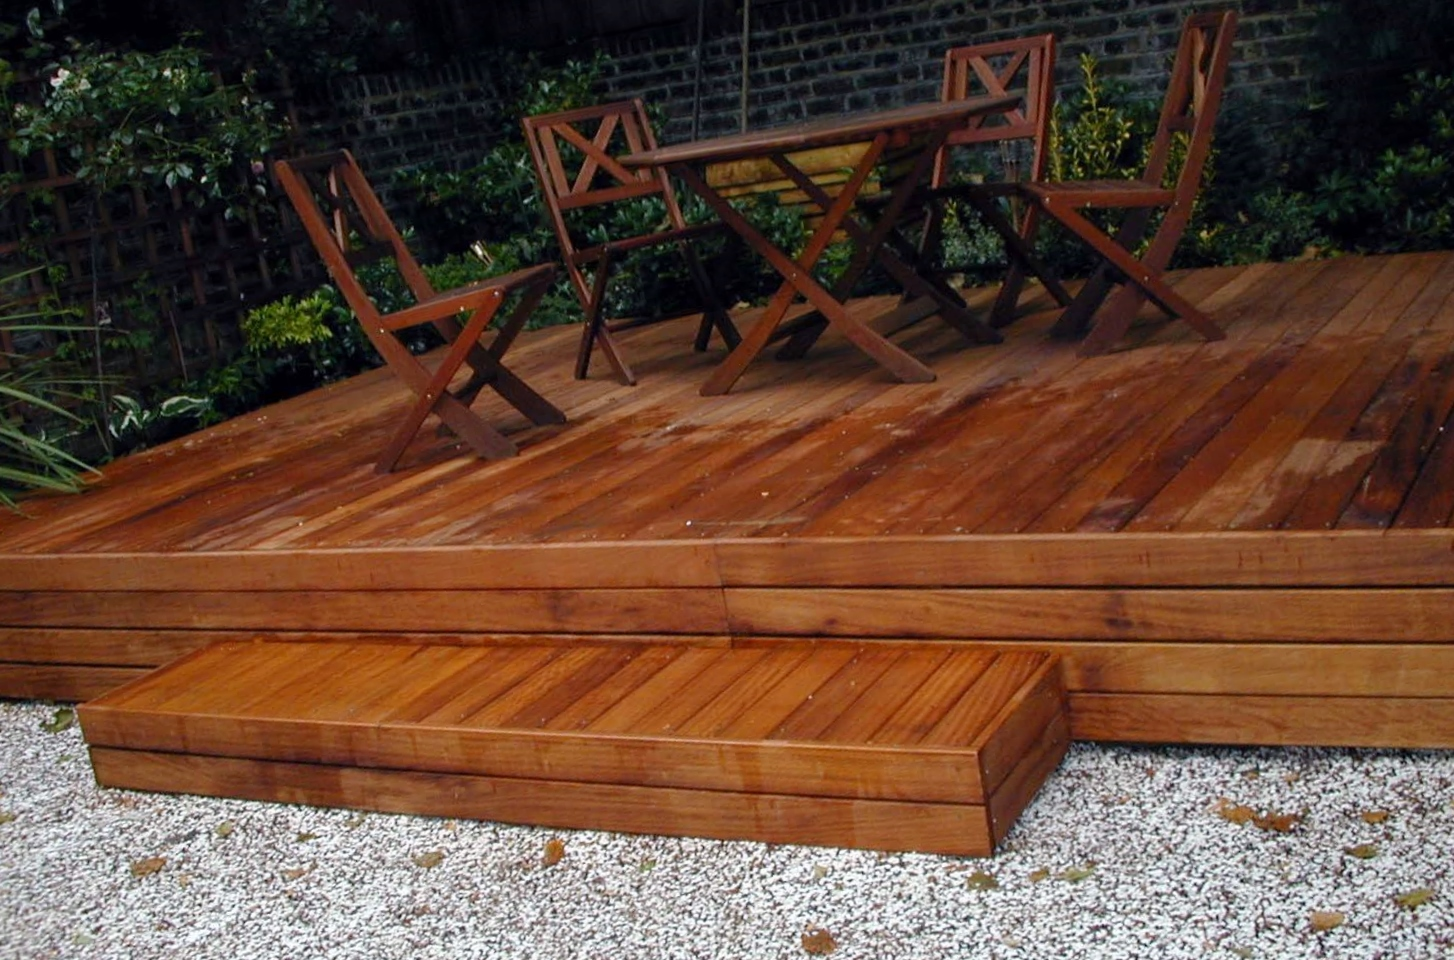 london decking deck builders installers hardwood softwood garden design (39)